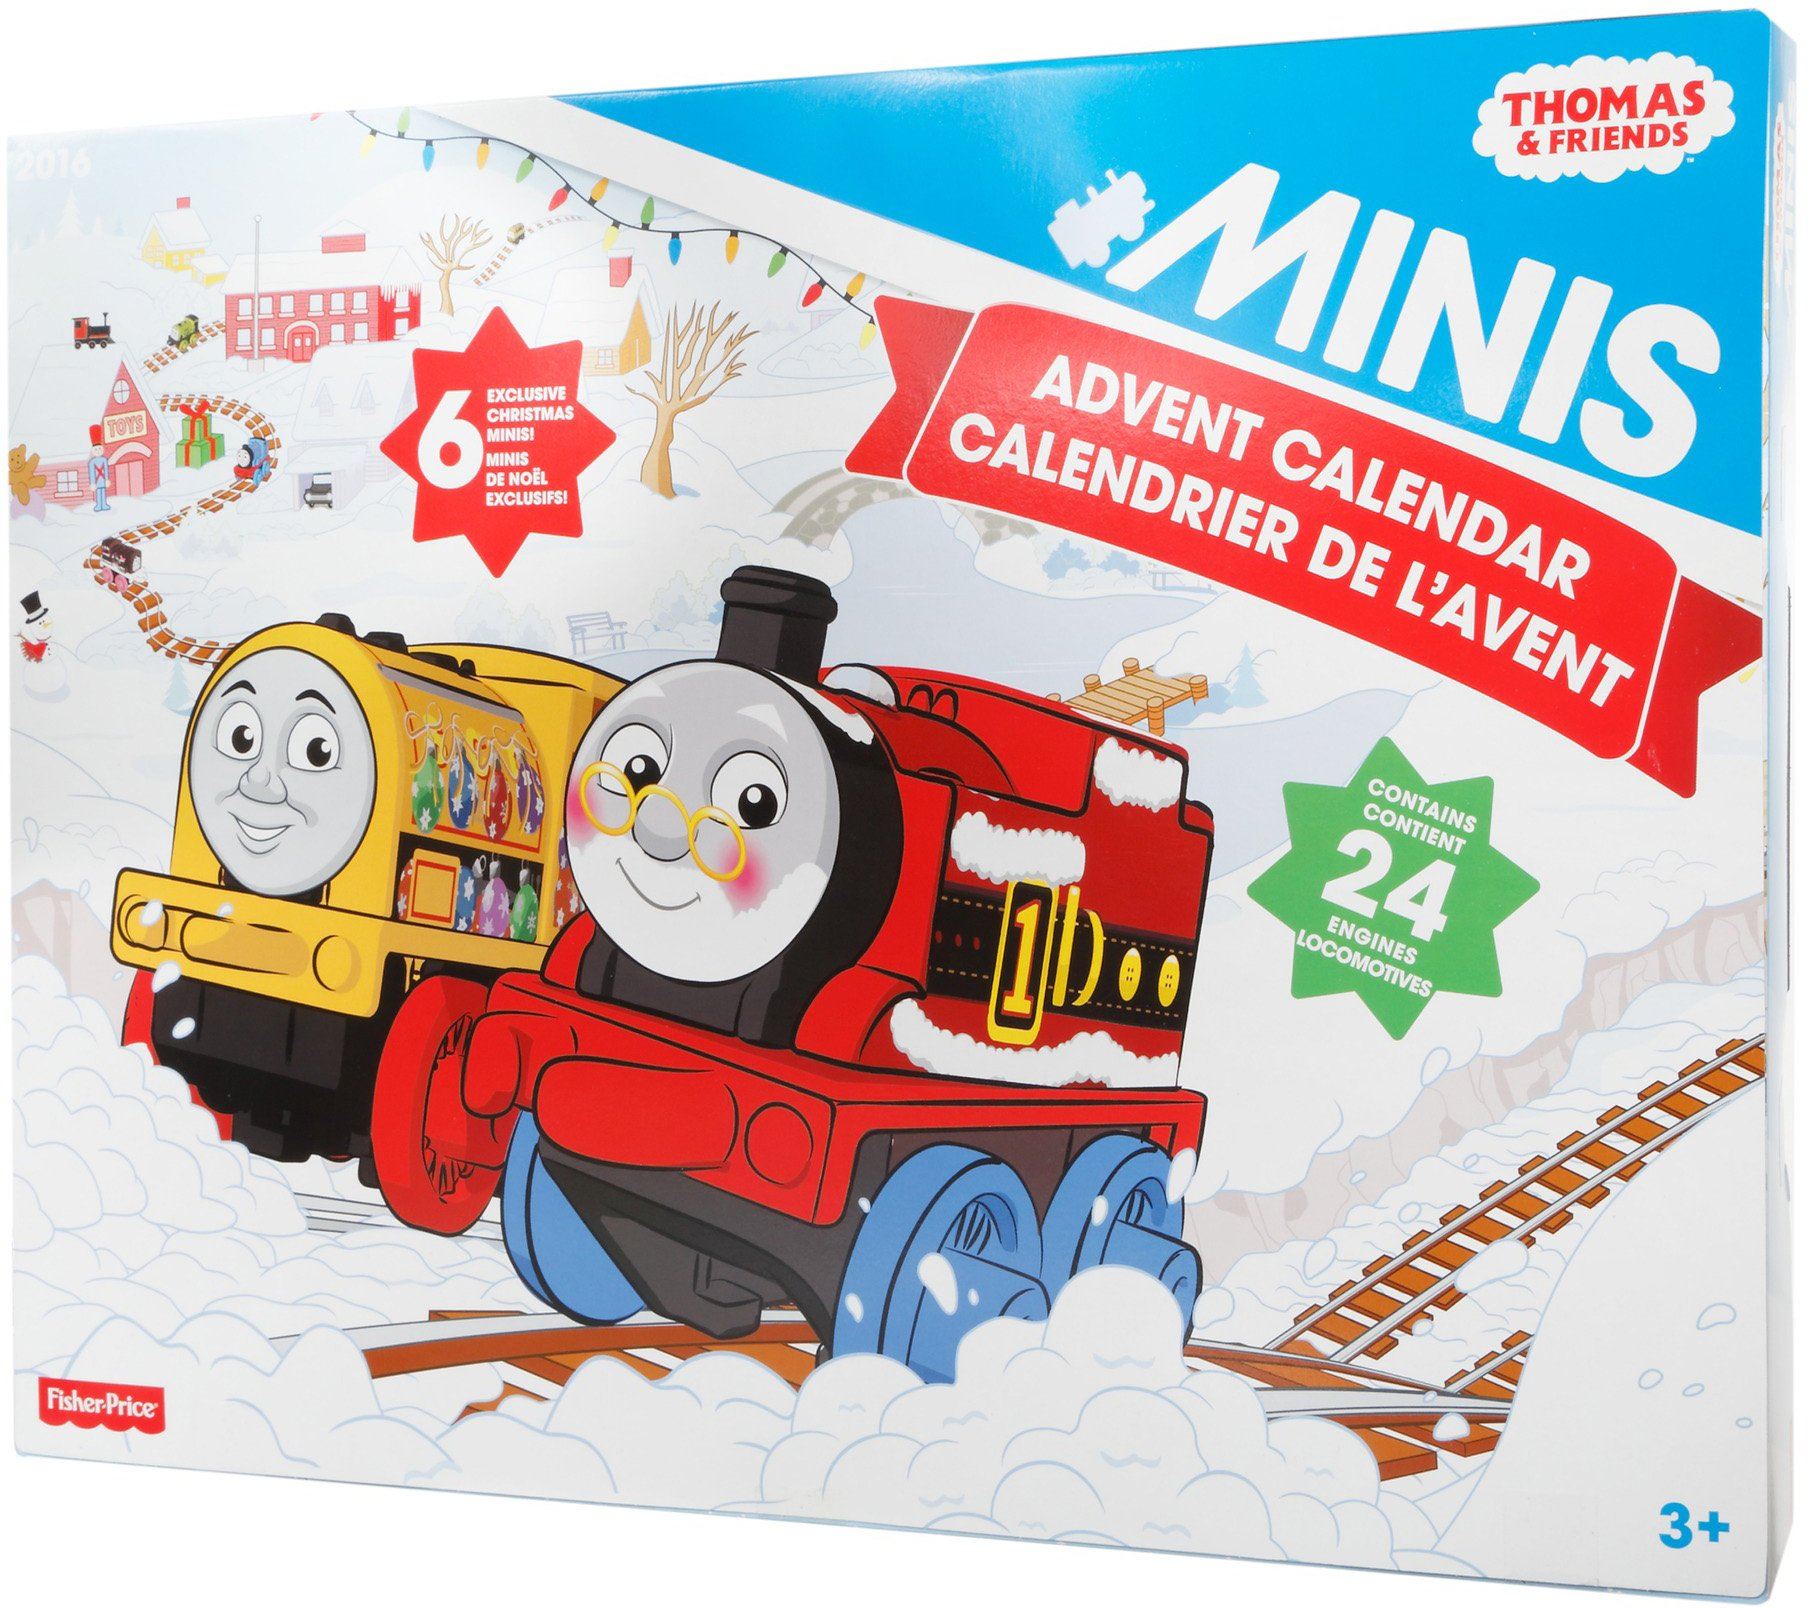 Thomas & Friends Fisher-Price MINIS, Advent Calendar by Thomas & Friends (Image #9)